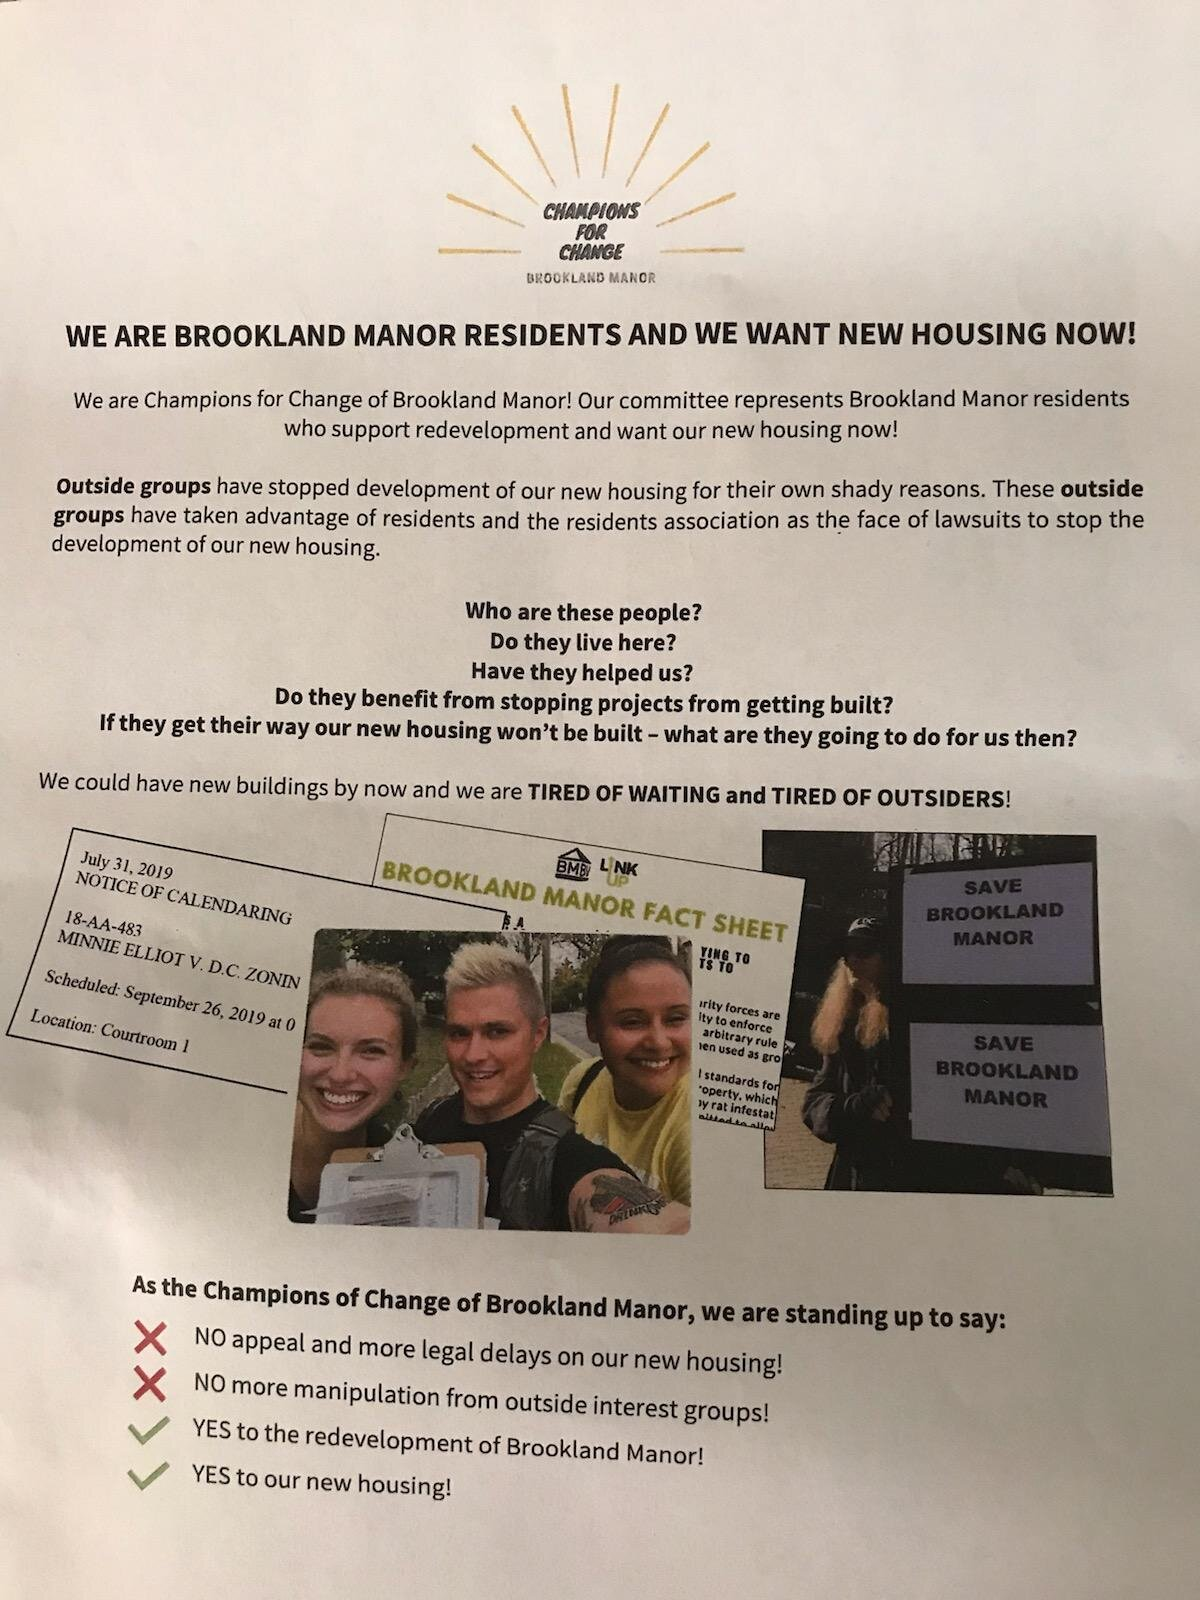 Volunteers supporting Brookland Manor Residents fighting family displacement were targeted in anonymous notices promoting Mid-City's agenda. Volunteers included a Ward 2 ANC Madeleine Stirling.